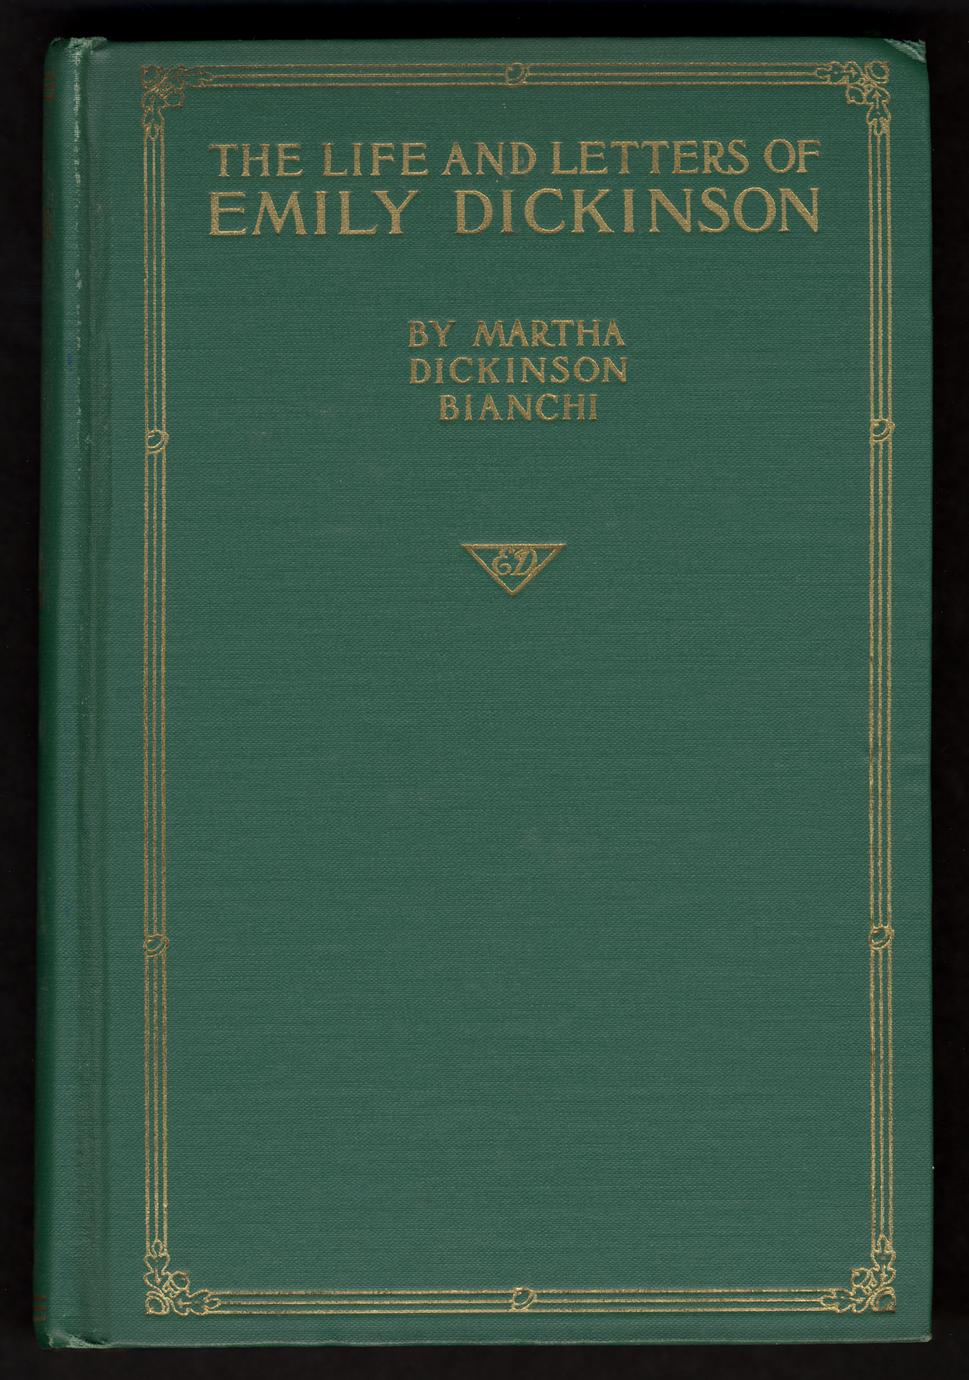 The life and letters of Emily Dickinson (1 of 3)